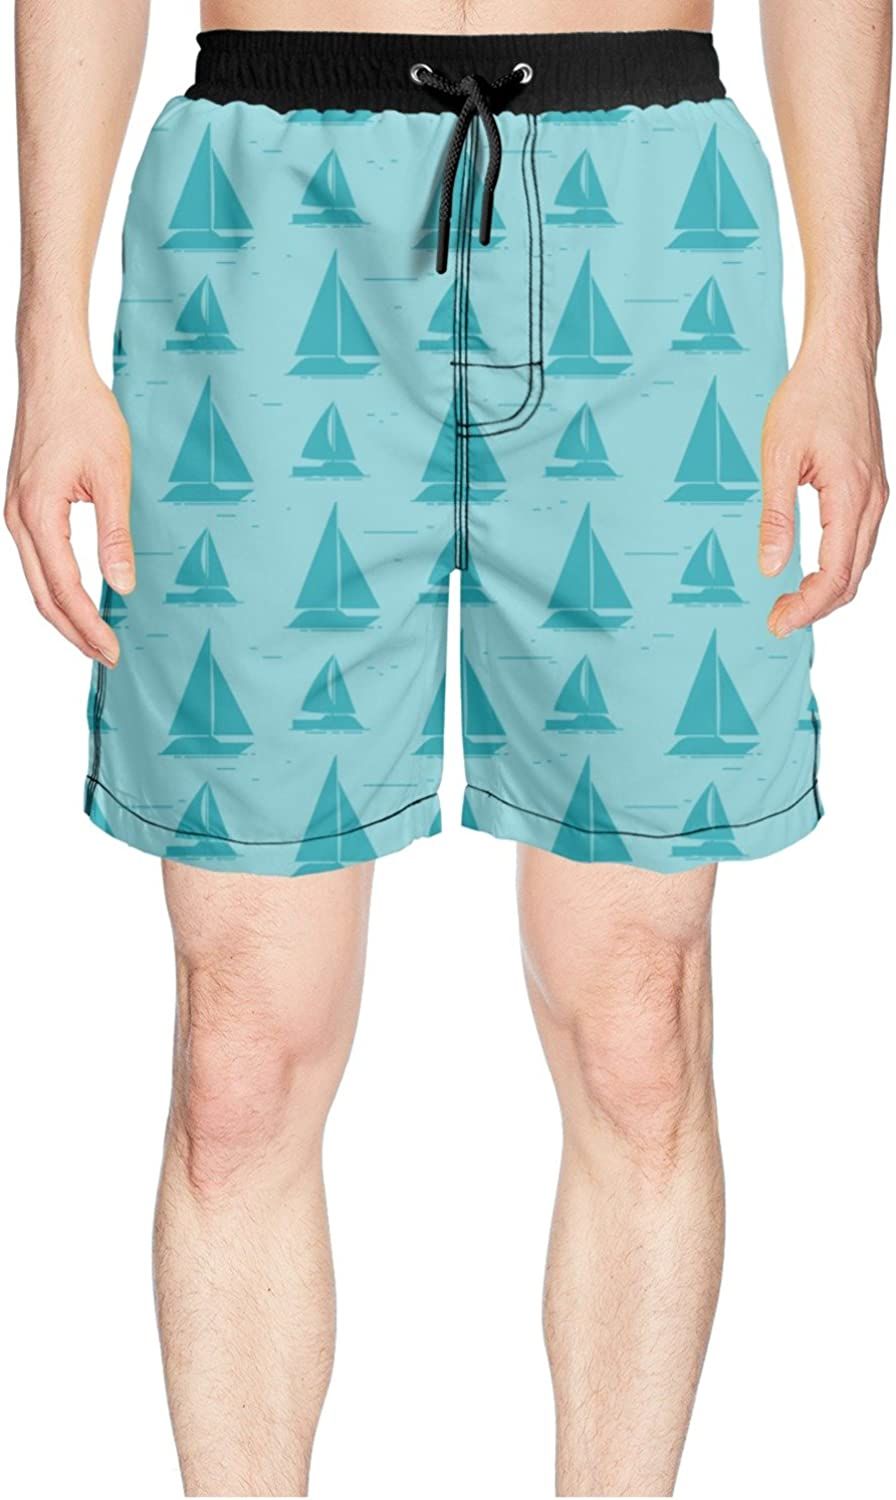 f21d1cae85b07 Truye rrelk Patterned Sailboat Silhouettes Design Printed Mens Guys Guys  Guys Shorts for Beach 5b6f9a